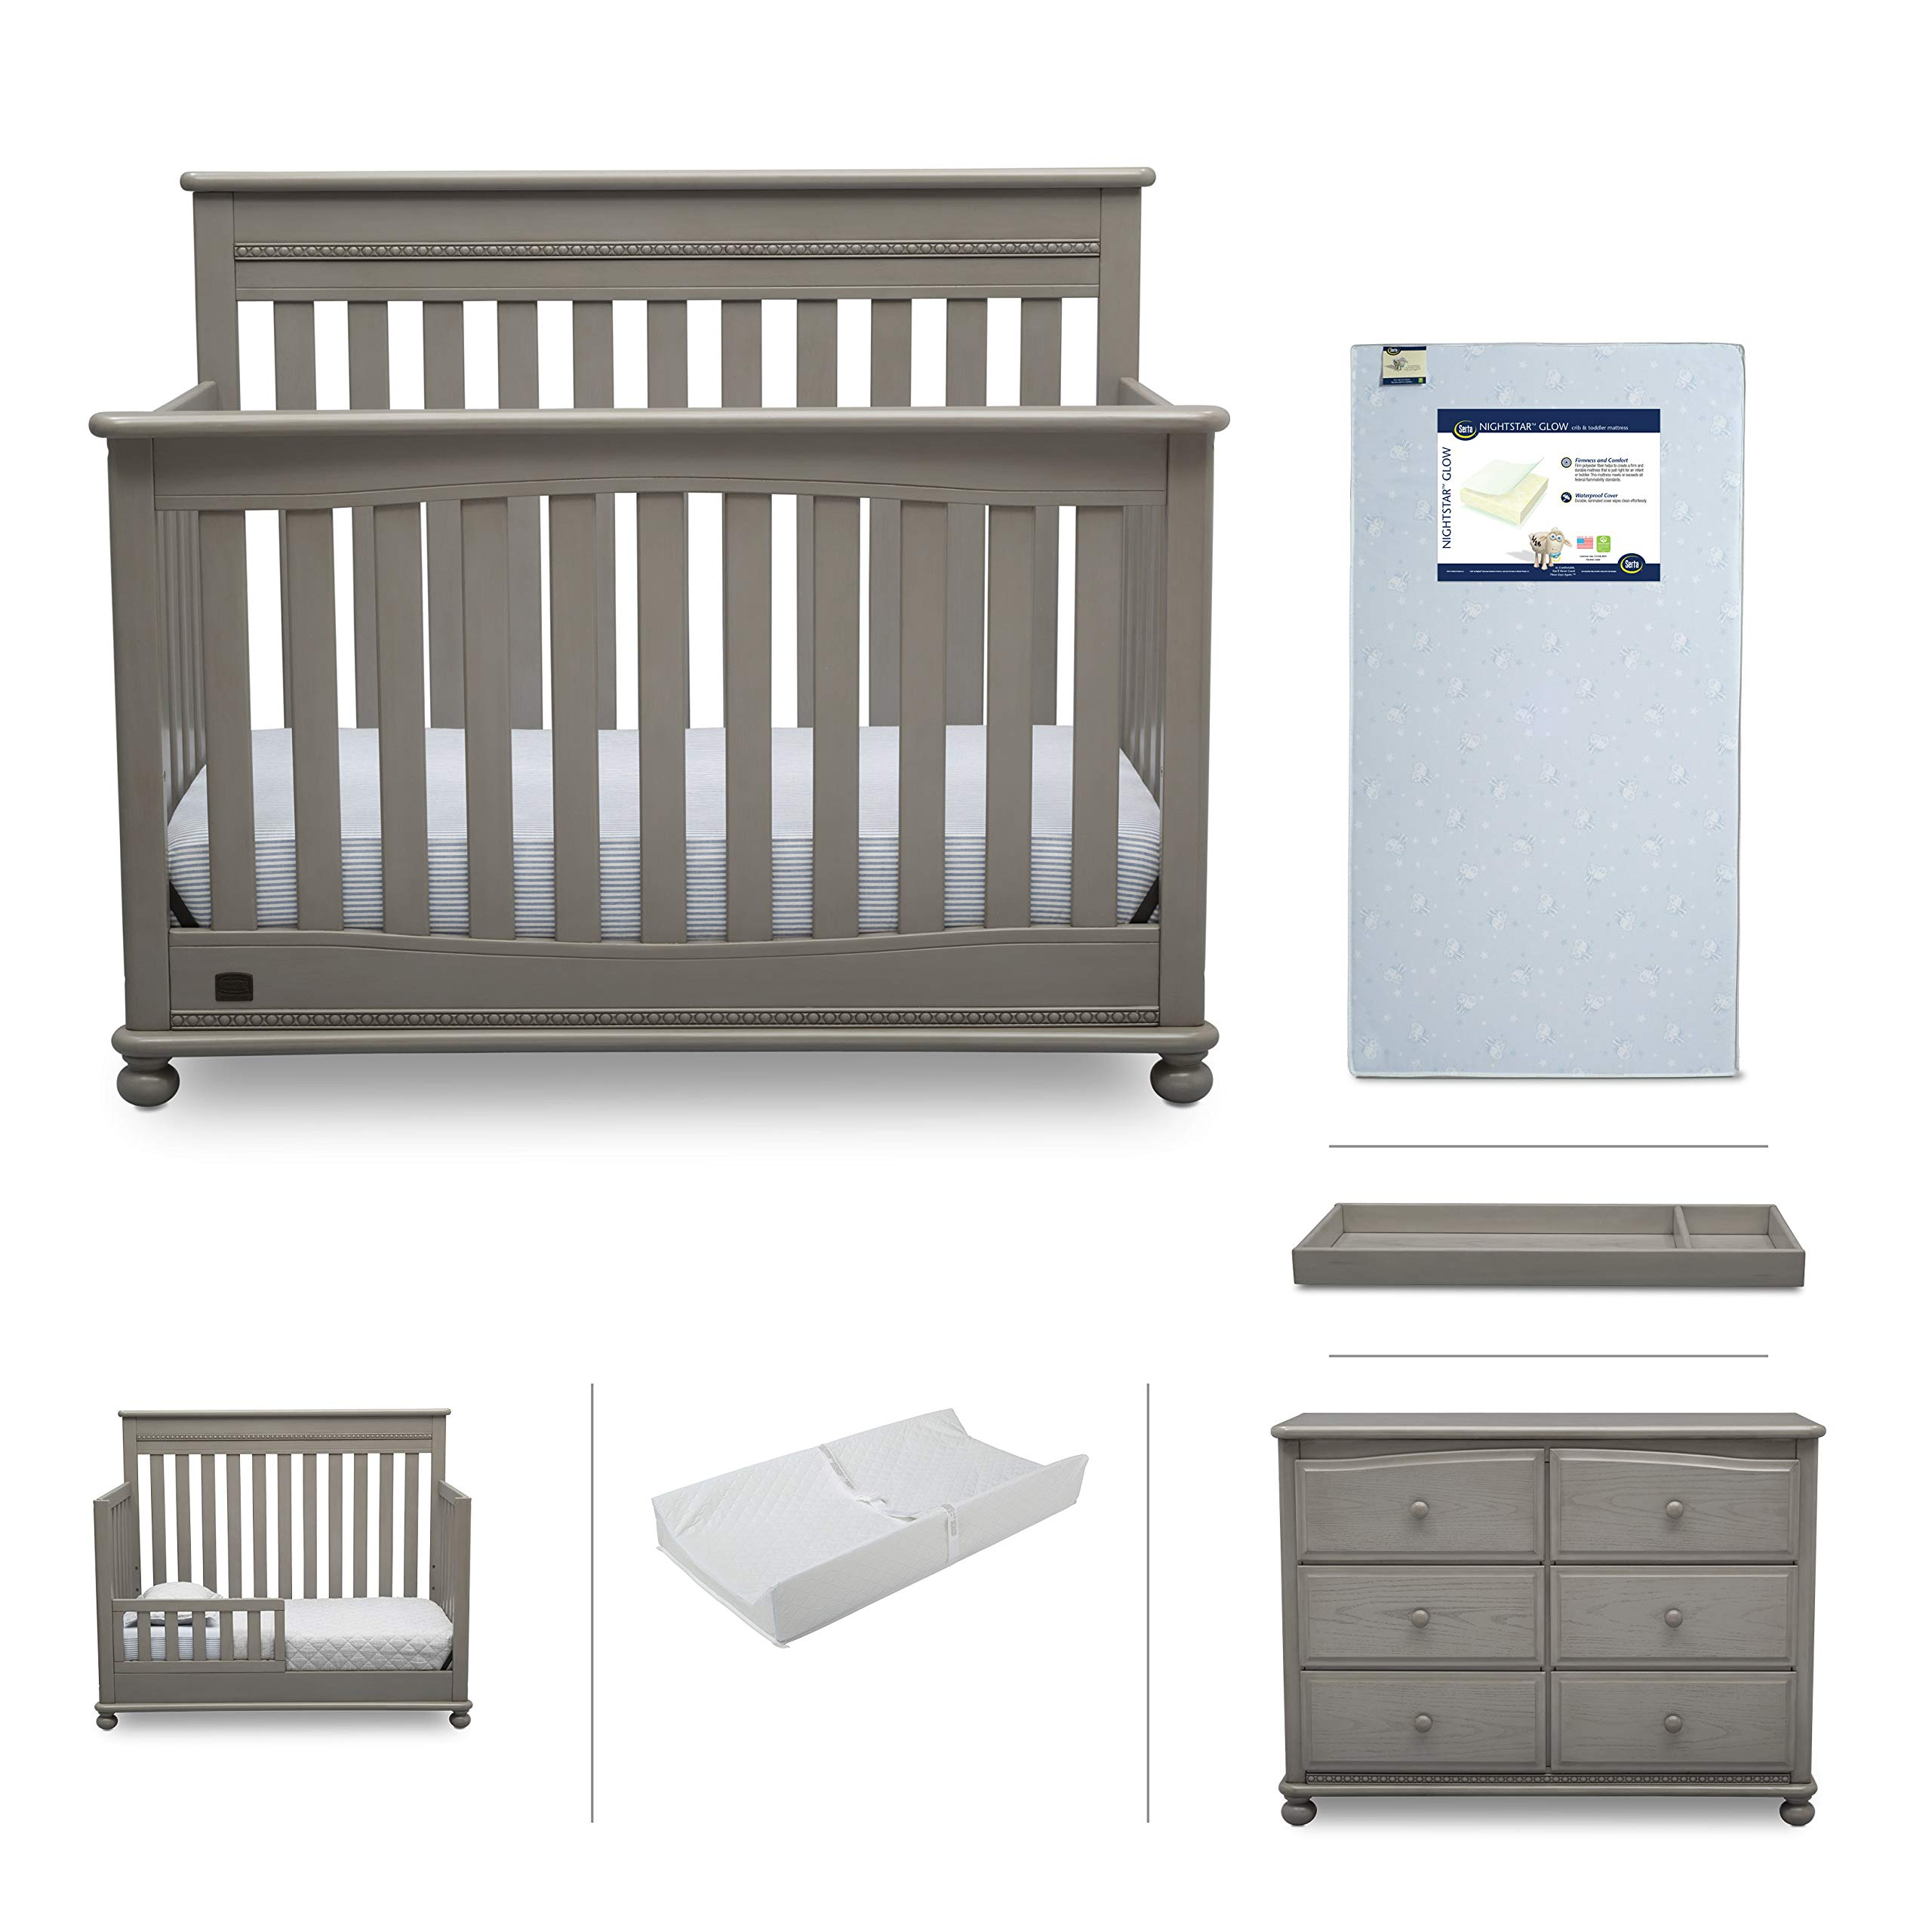 Baby Nursery Furniture Set - 6 Pieces Including Convertible Crib, Dresser, Crib Mattress, Toddler Rail, Changing Top, Changing Pad - Simmons Kids Franklin Storm Grey by Delta Children